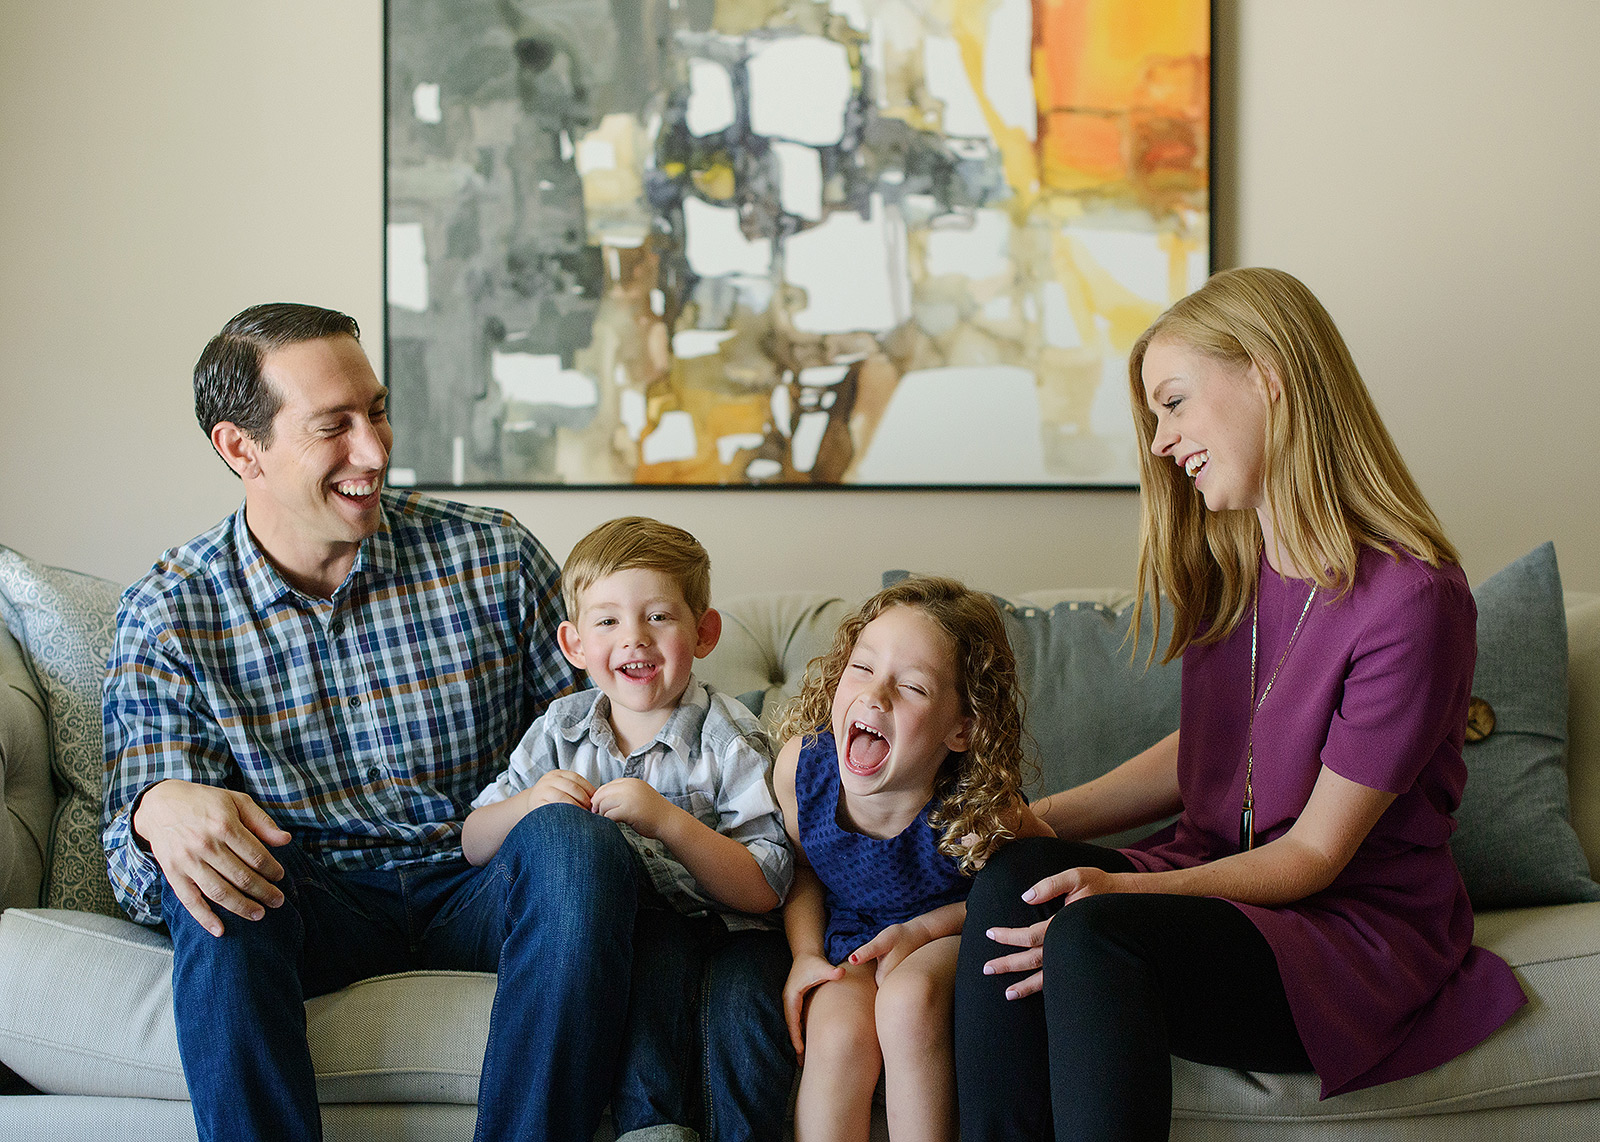 Laughing family photo on the couch lifestyle session against abstract art